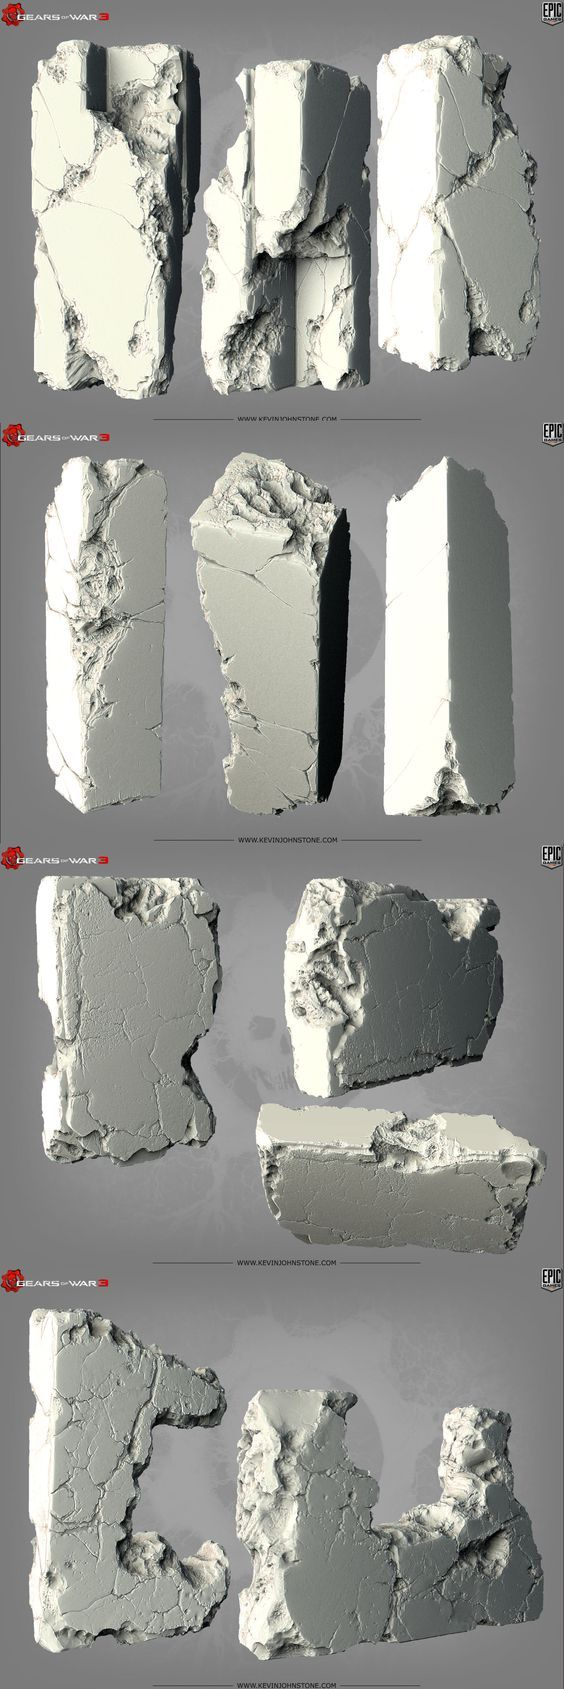 an in depth look at texturing using the deformation pane inside of zbrush: